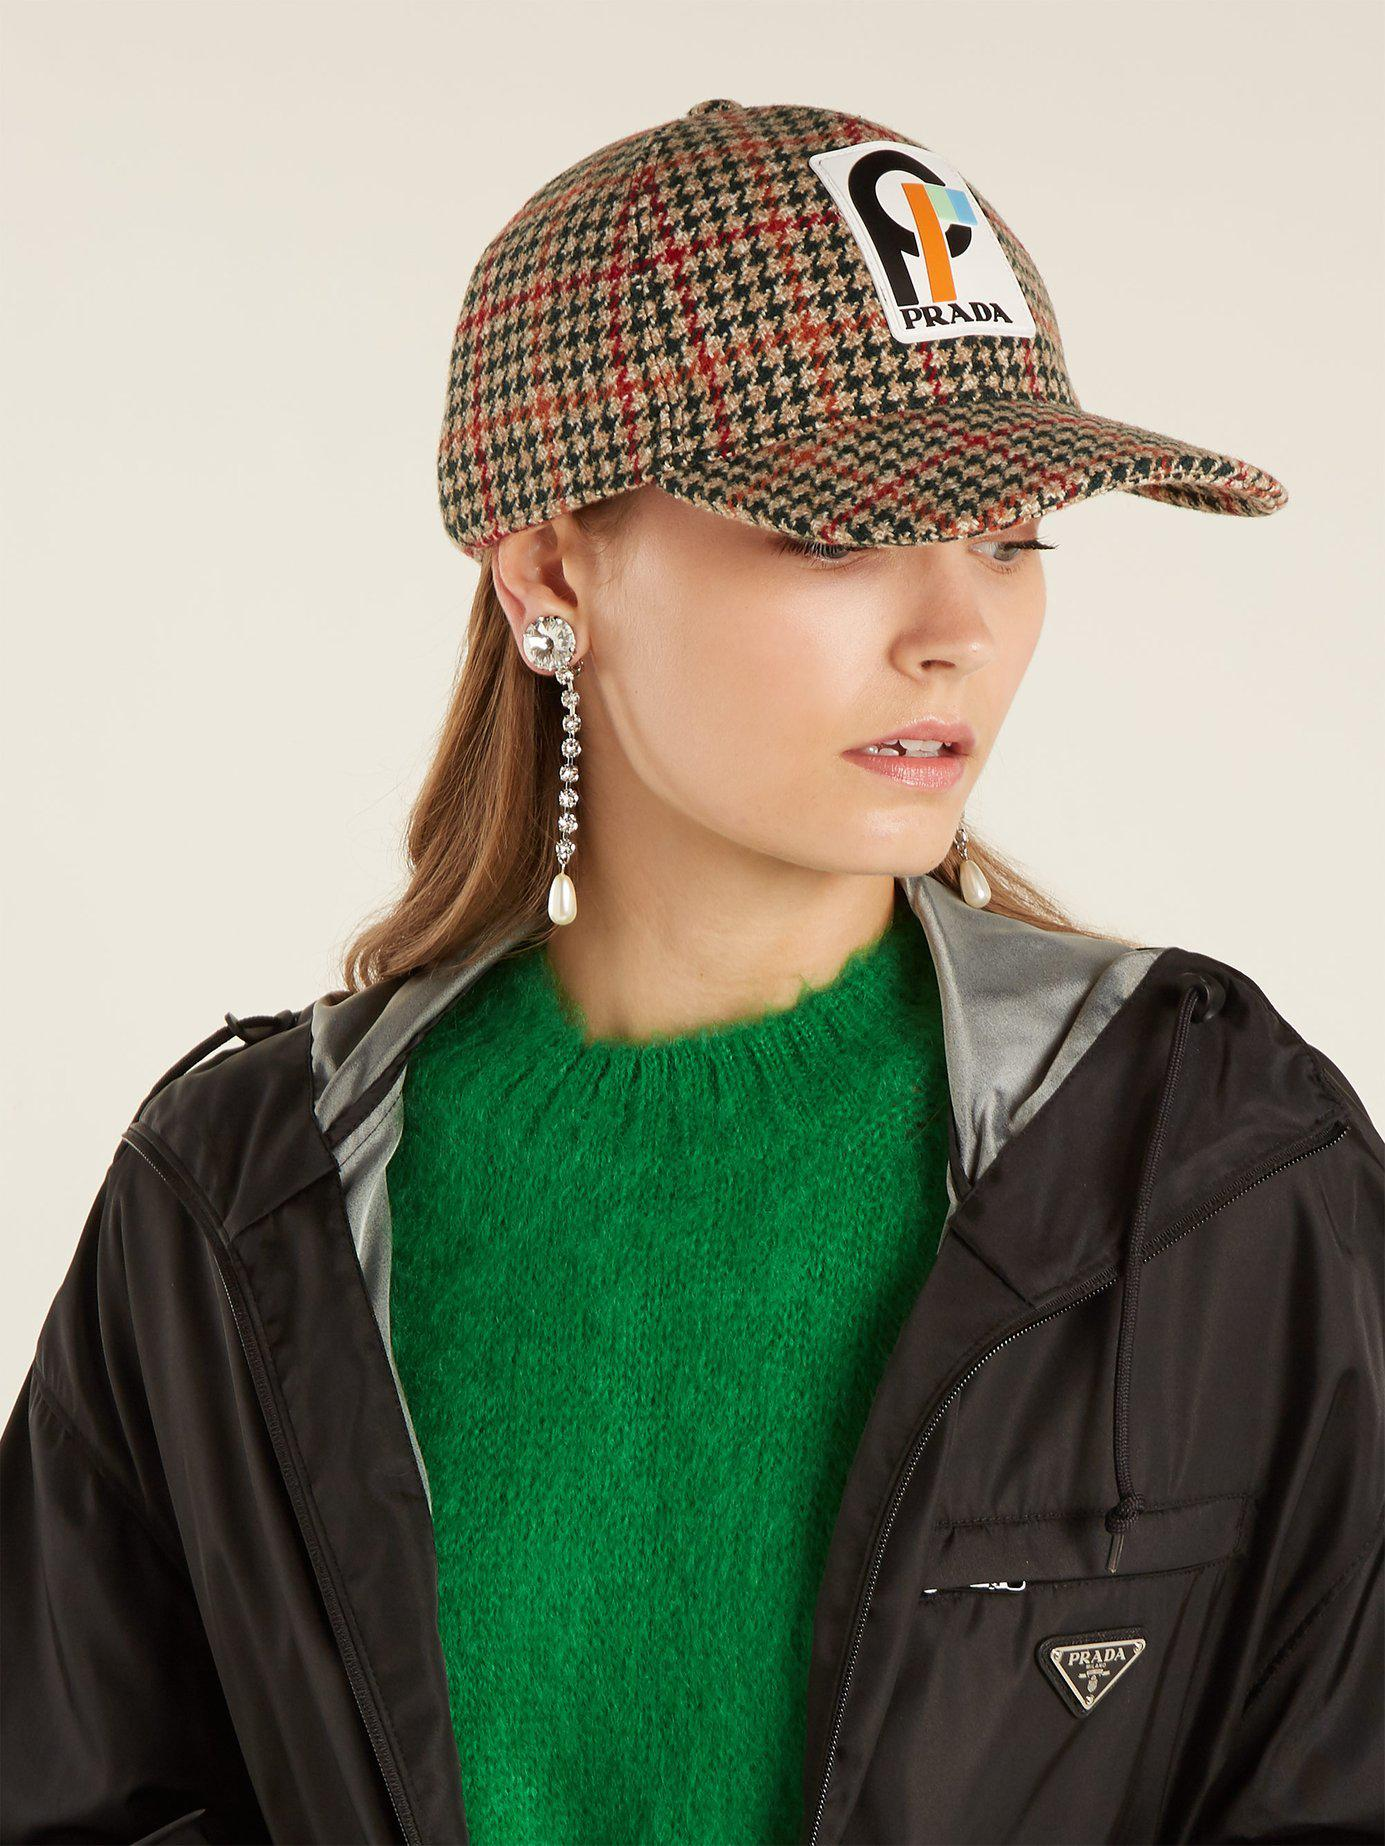 1d51db502fc Prada - Green Houndstooth Wool Tweed Cap - Lyst. View fullscreen